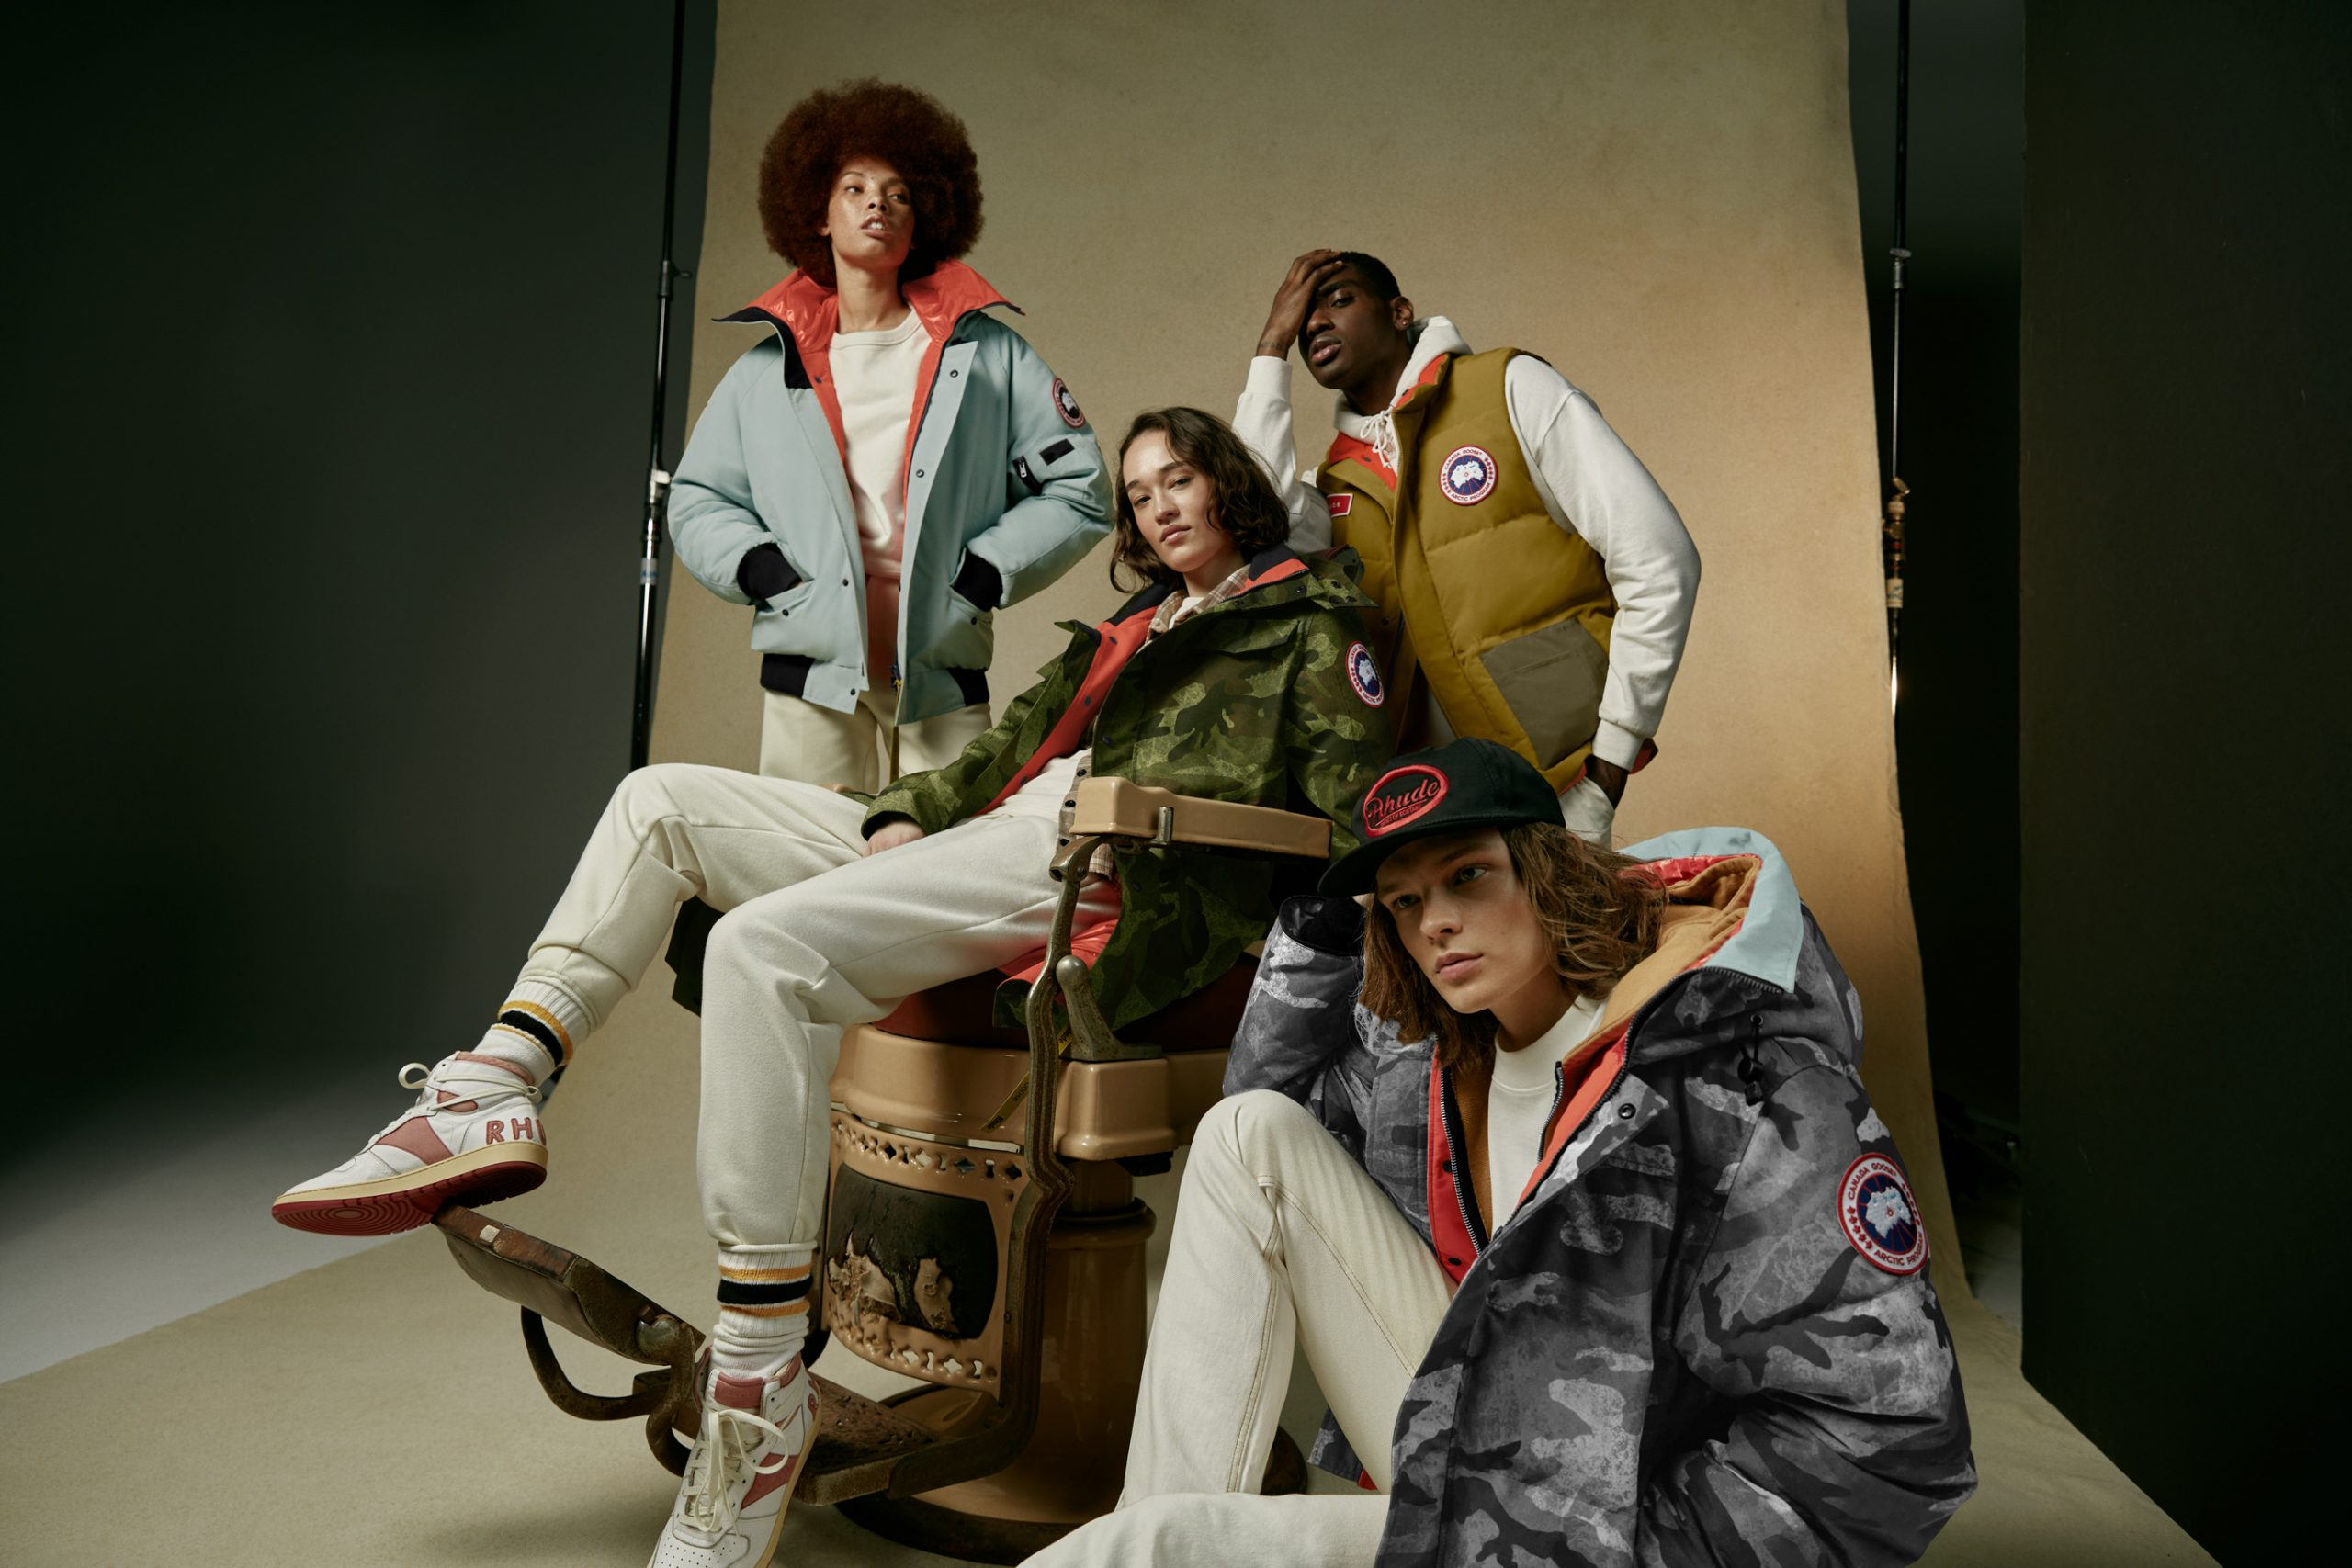 NBA X Canada Goose promo image: four models wearing Canada Goose gear together on a set.